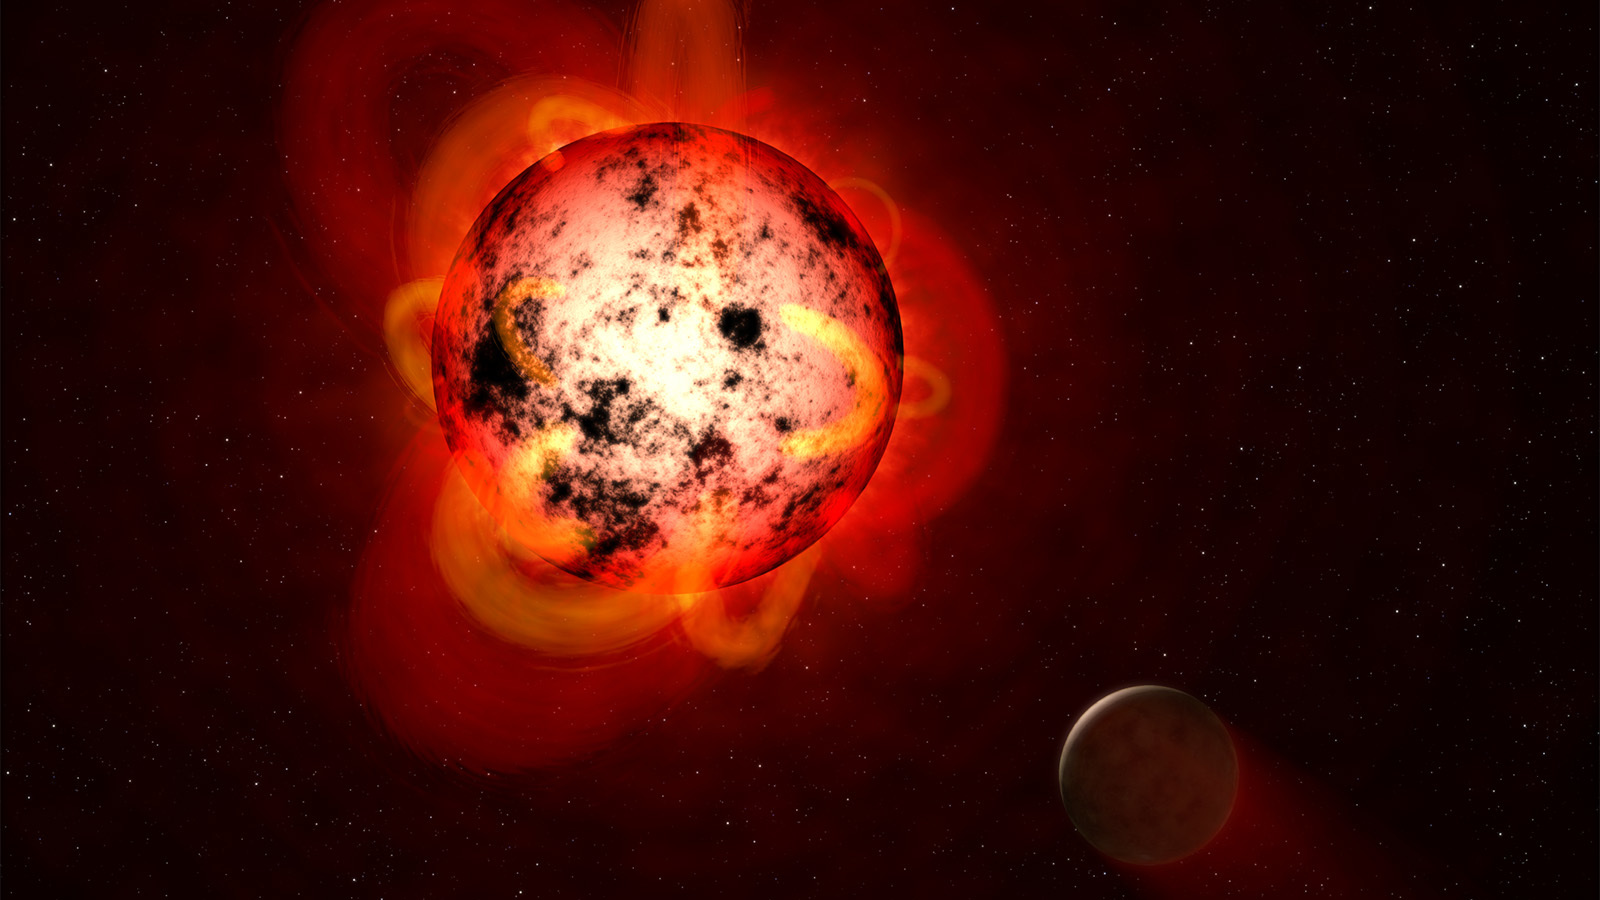 Illustration of red dwarf star and its planet.